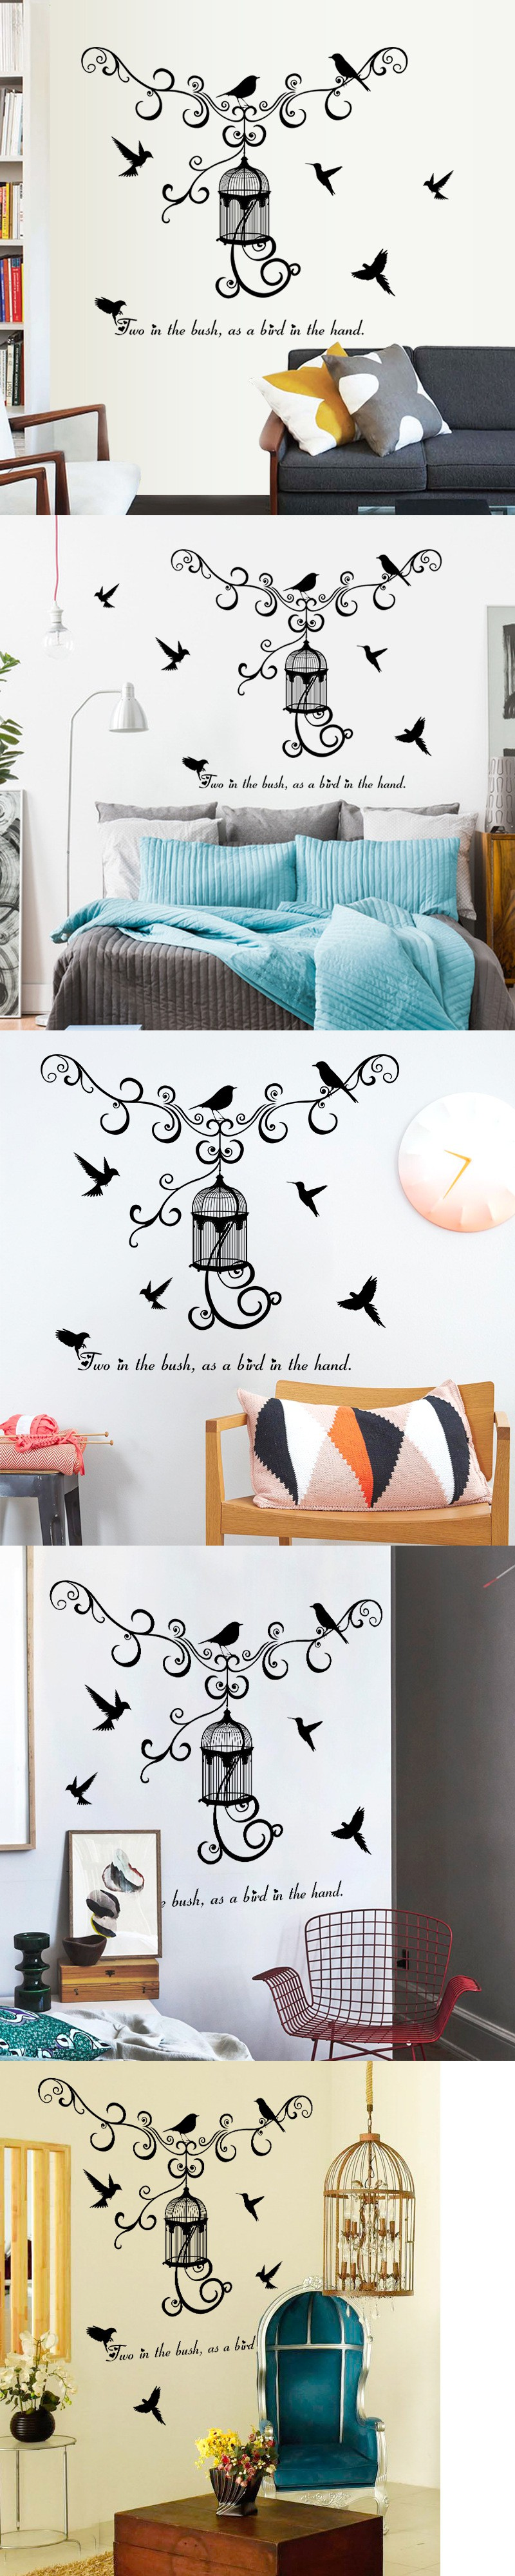 Warm and fun modern birdcage bedroom living room corridor background wall decoration wall sticker home decoration accessories $5.99